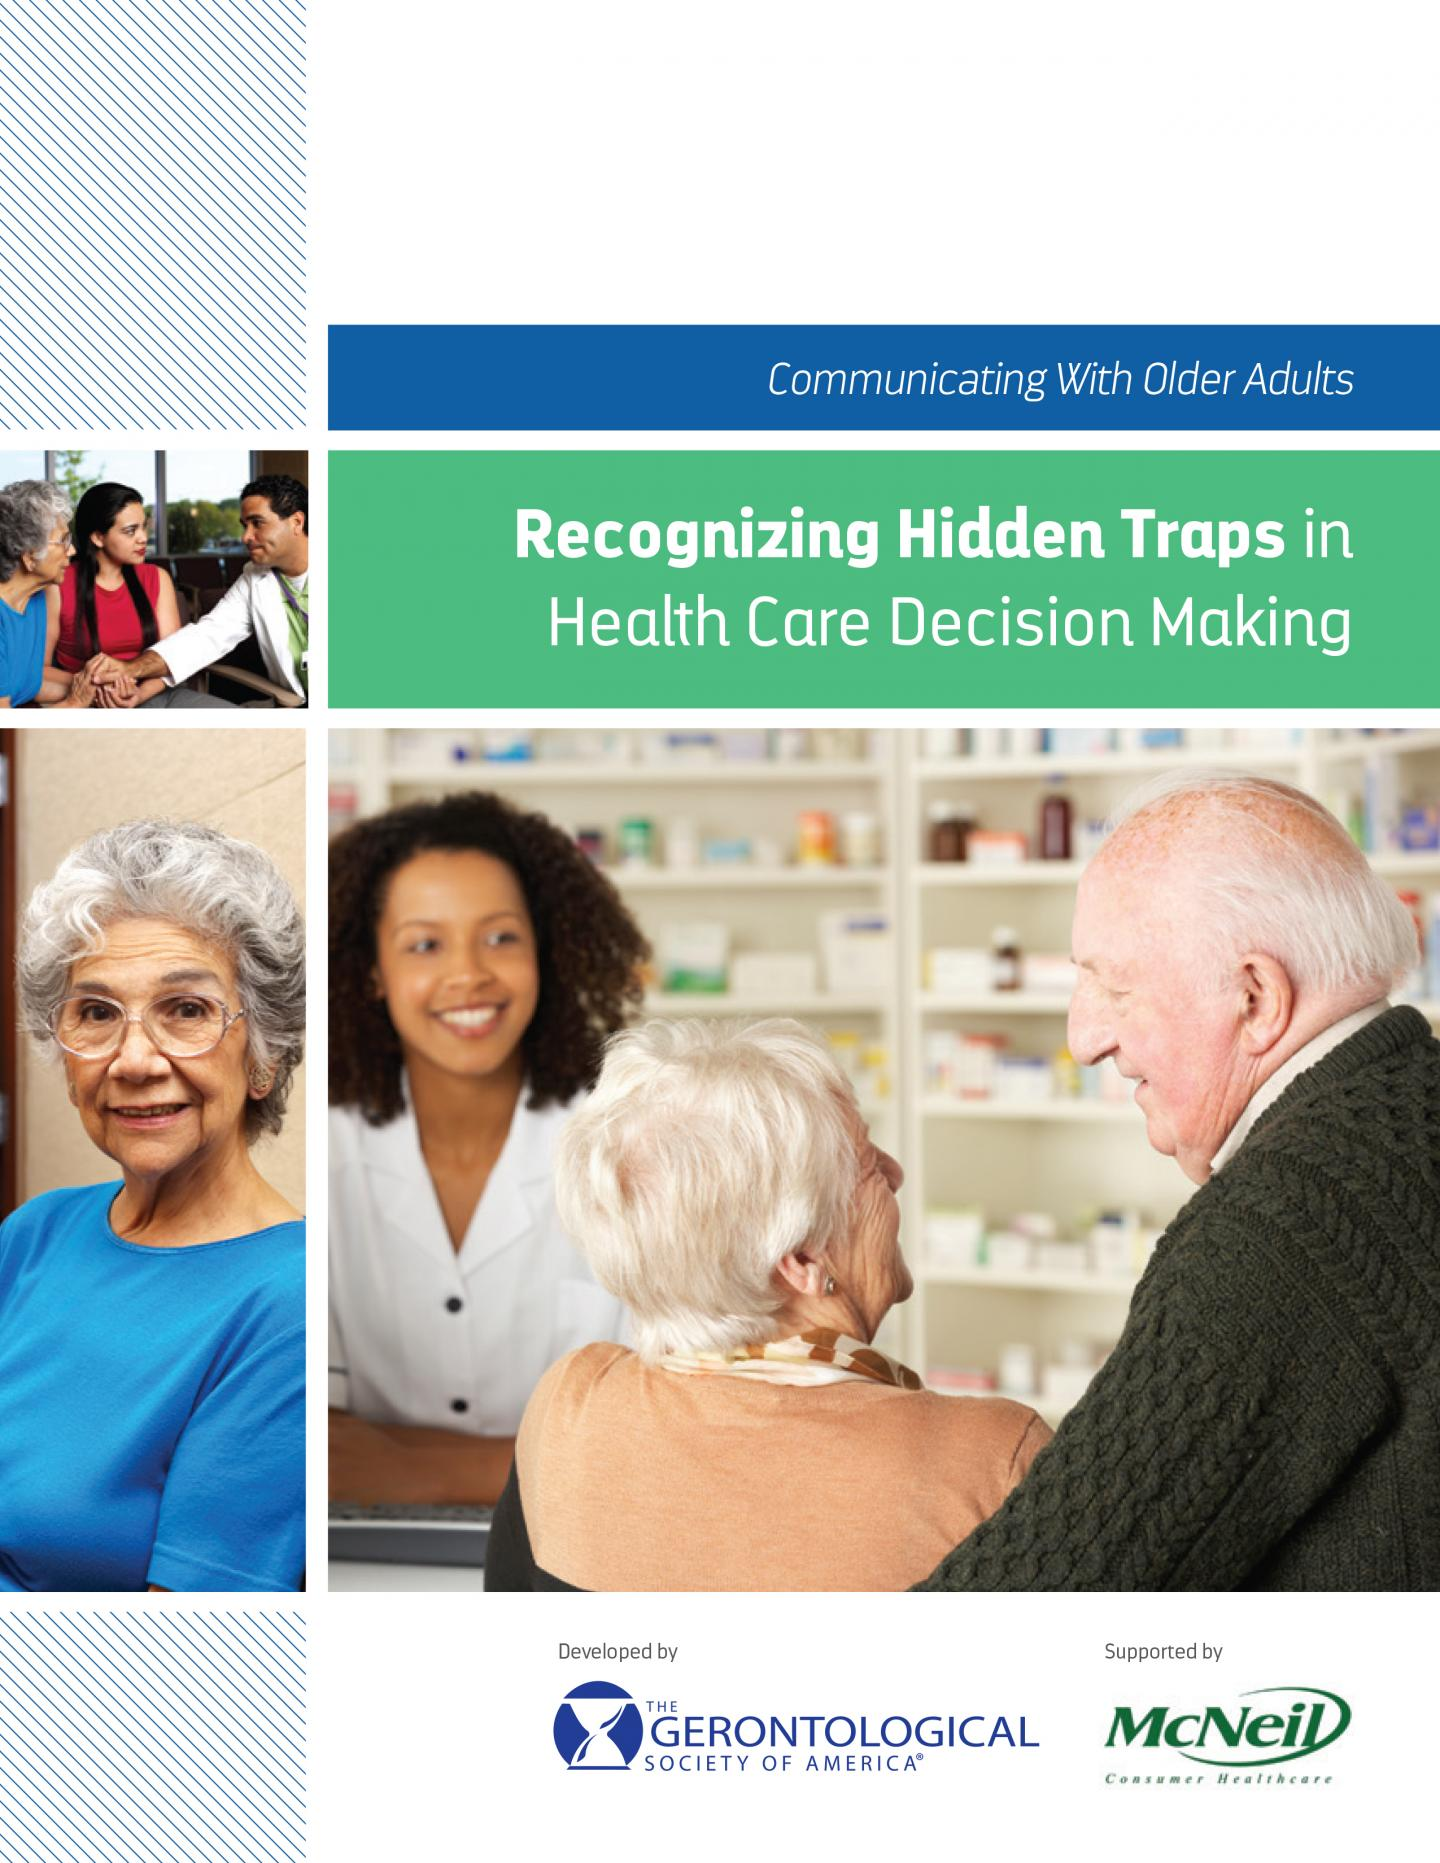 Communicating with Older Adults: Recognizing Hidden Traps in Health Care Decision Making